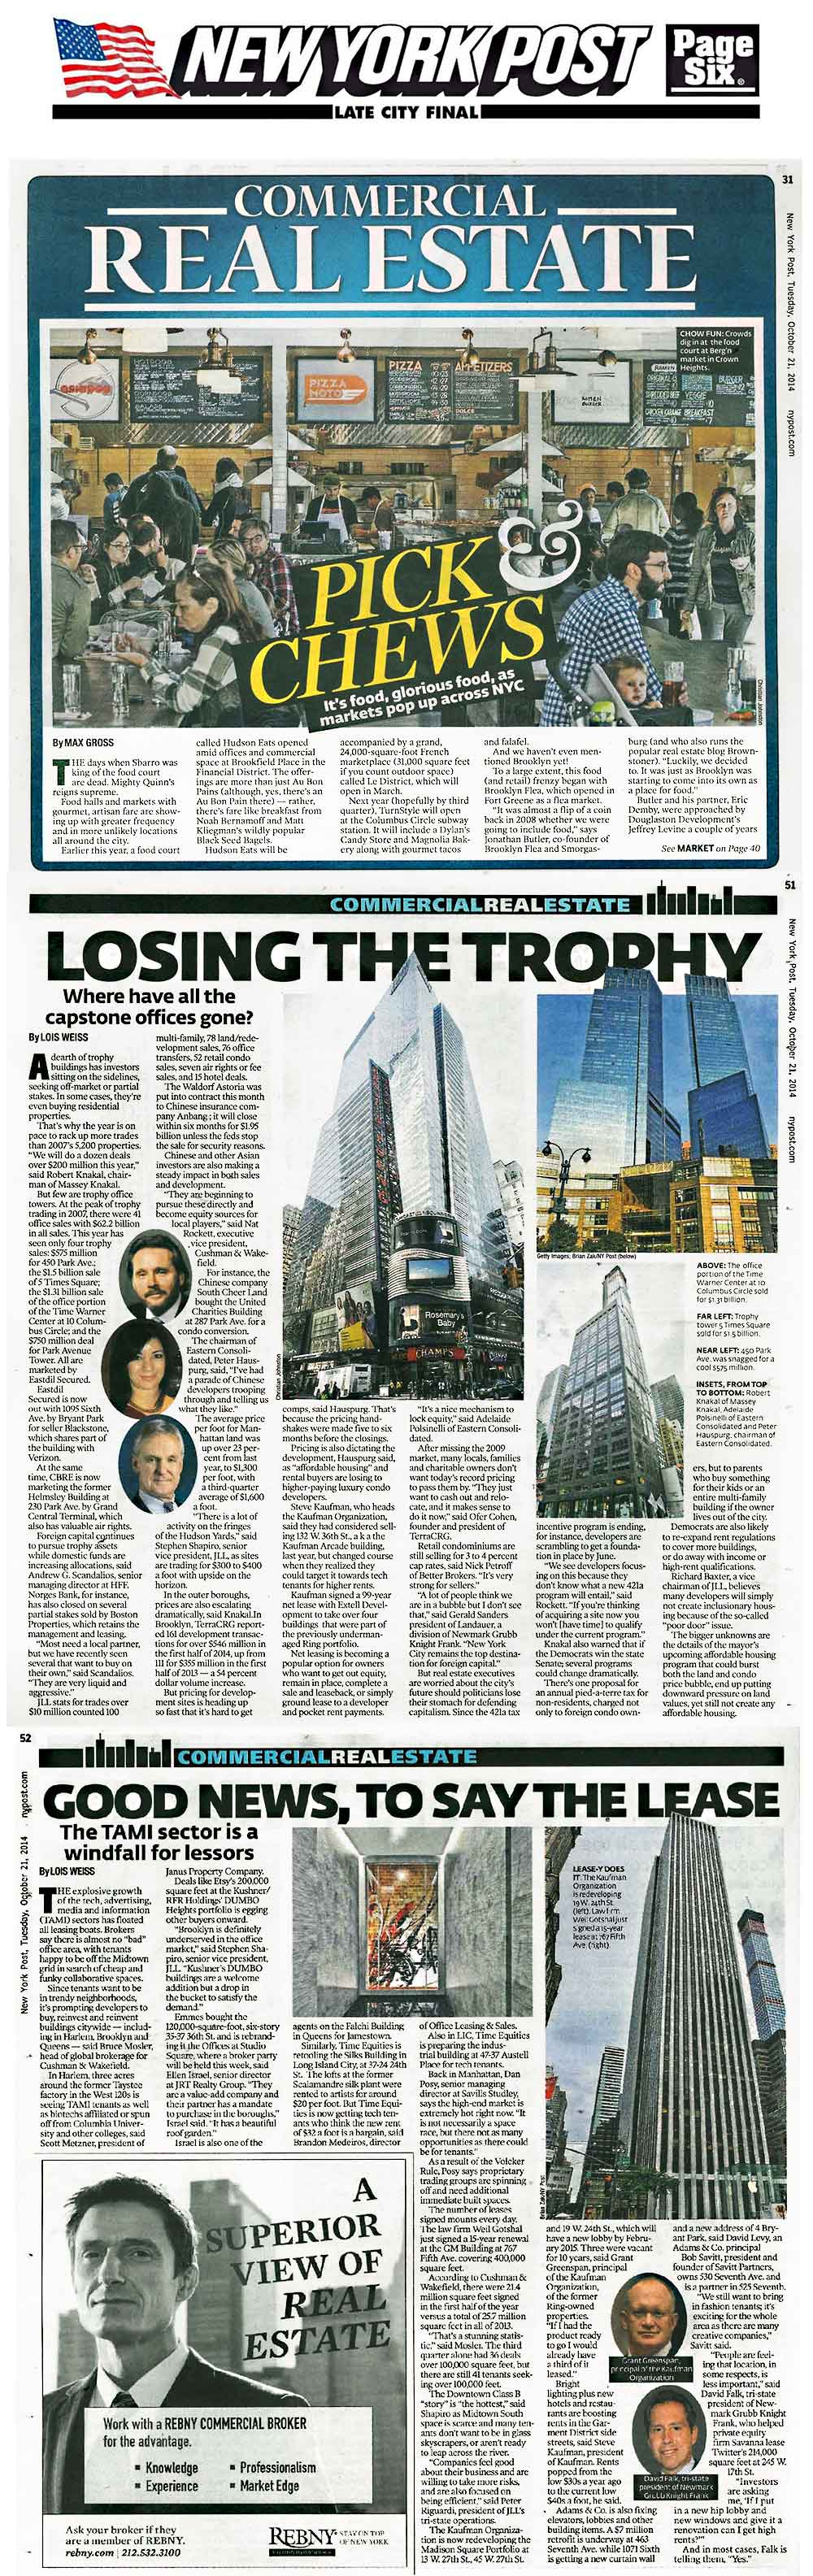 New-York-Post---Lois-Weiss-Special-Section--nu--10.21